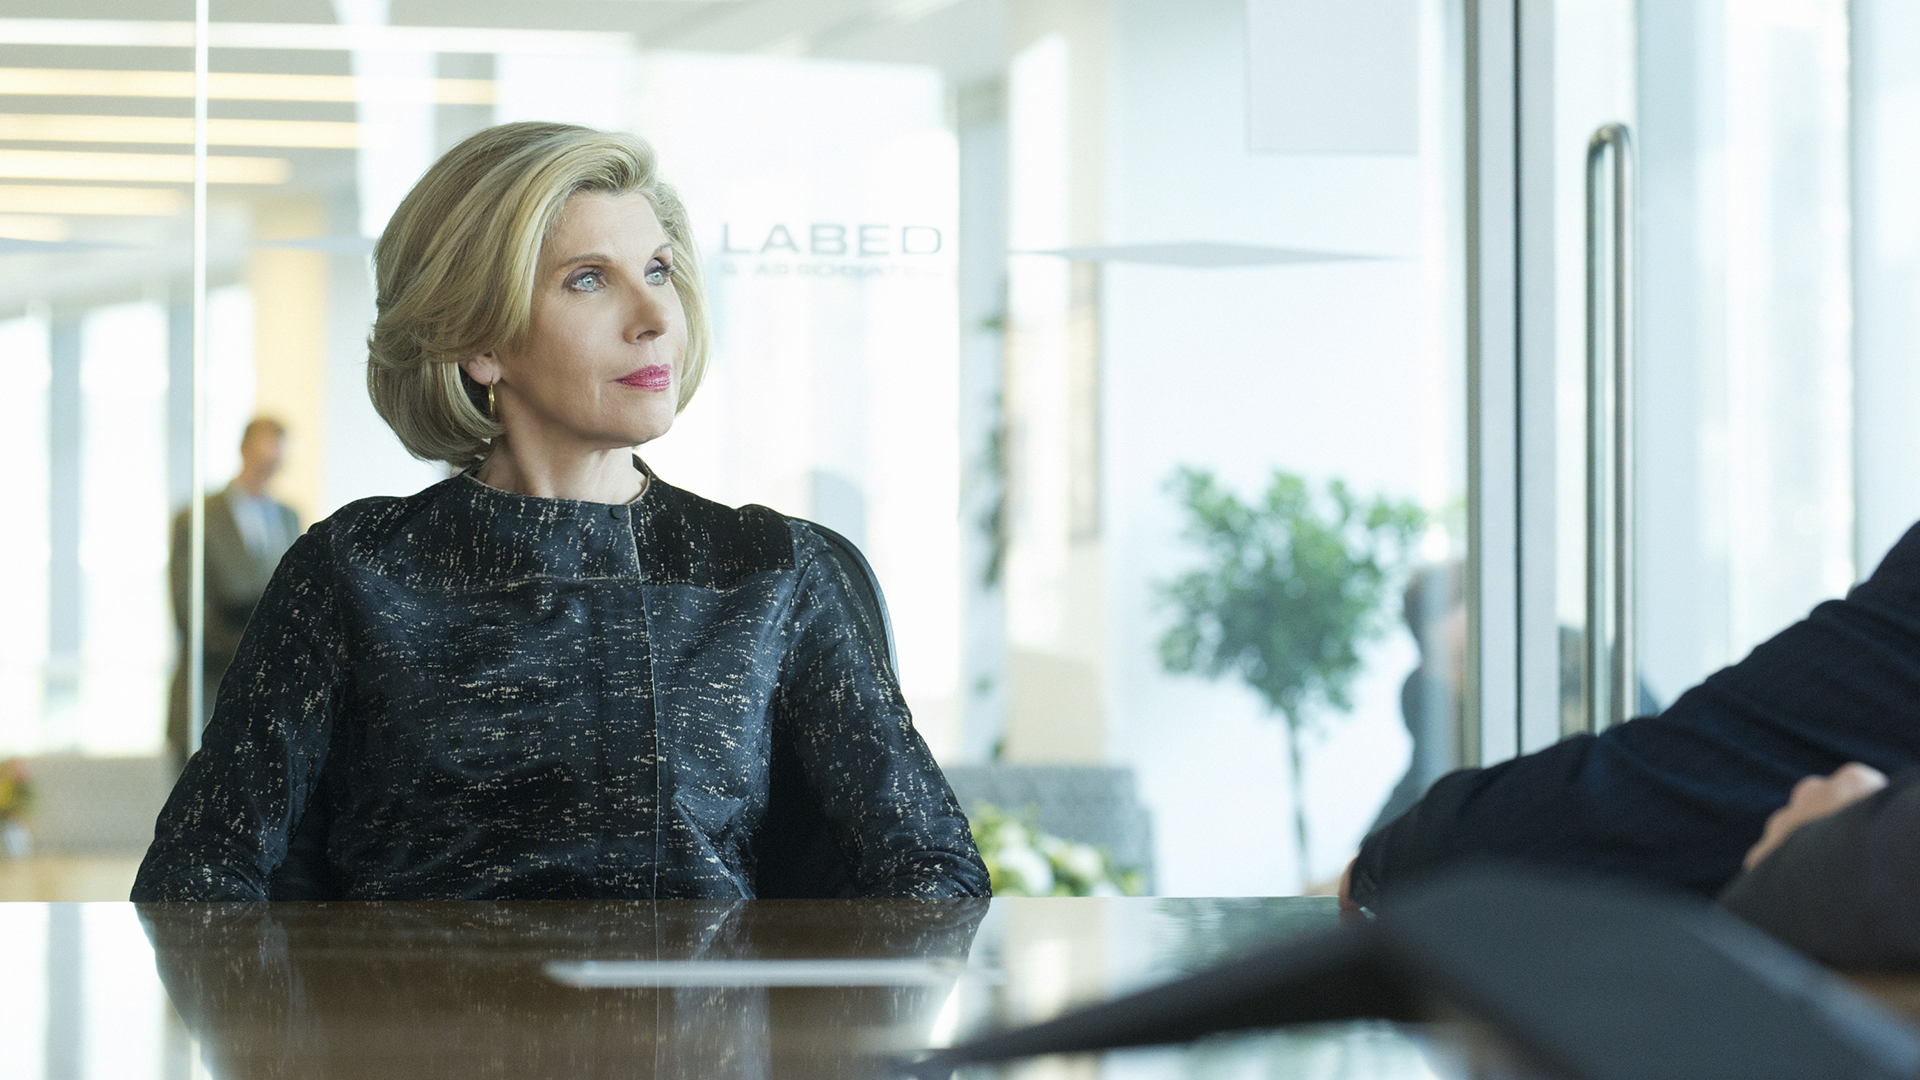 Now that we've gone behind the scenes, take a look at more photos from The Good Fight premiere.